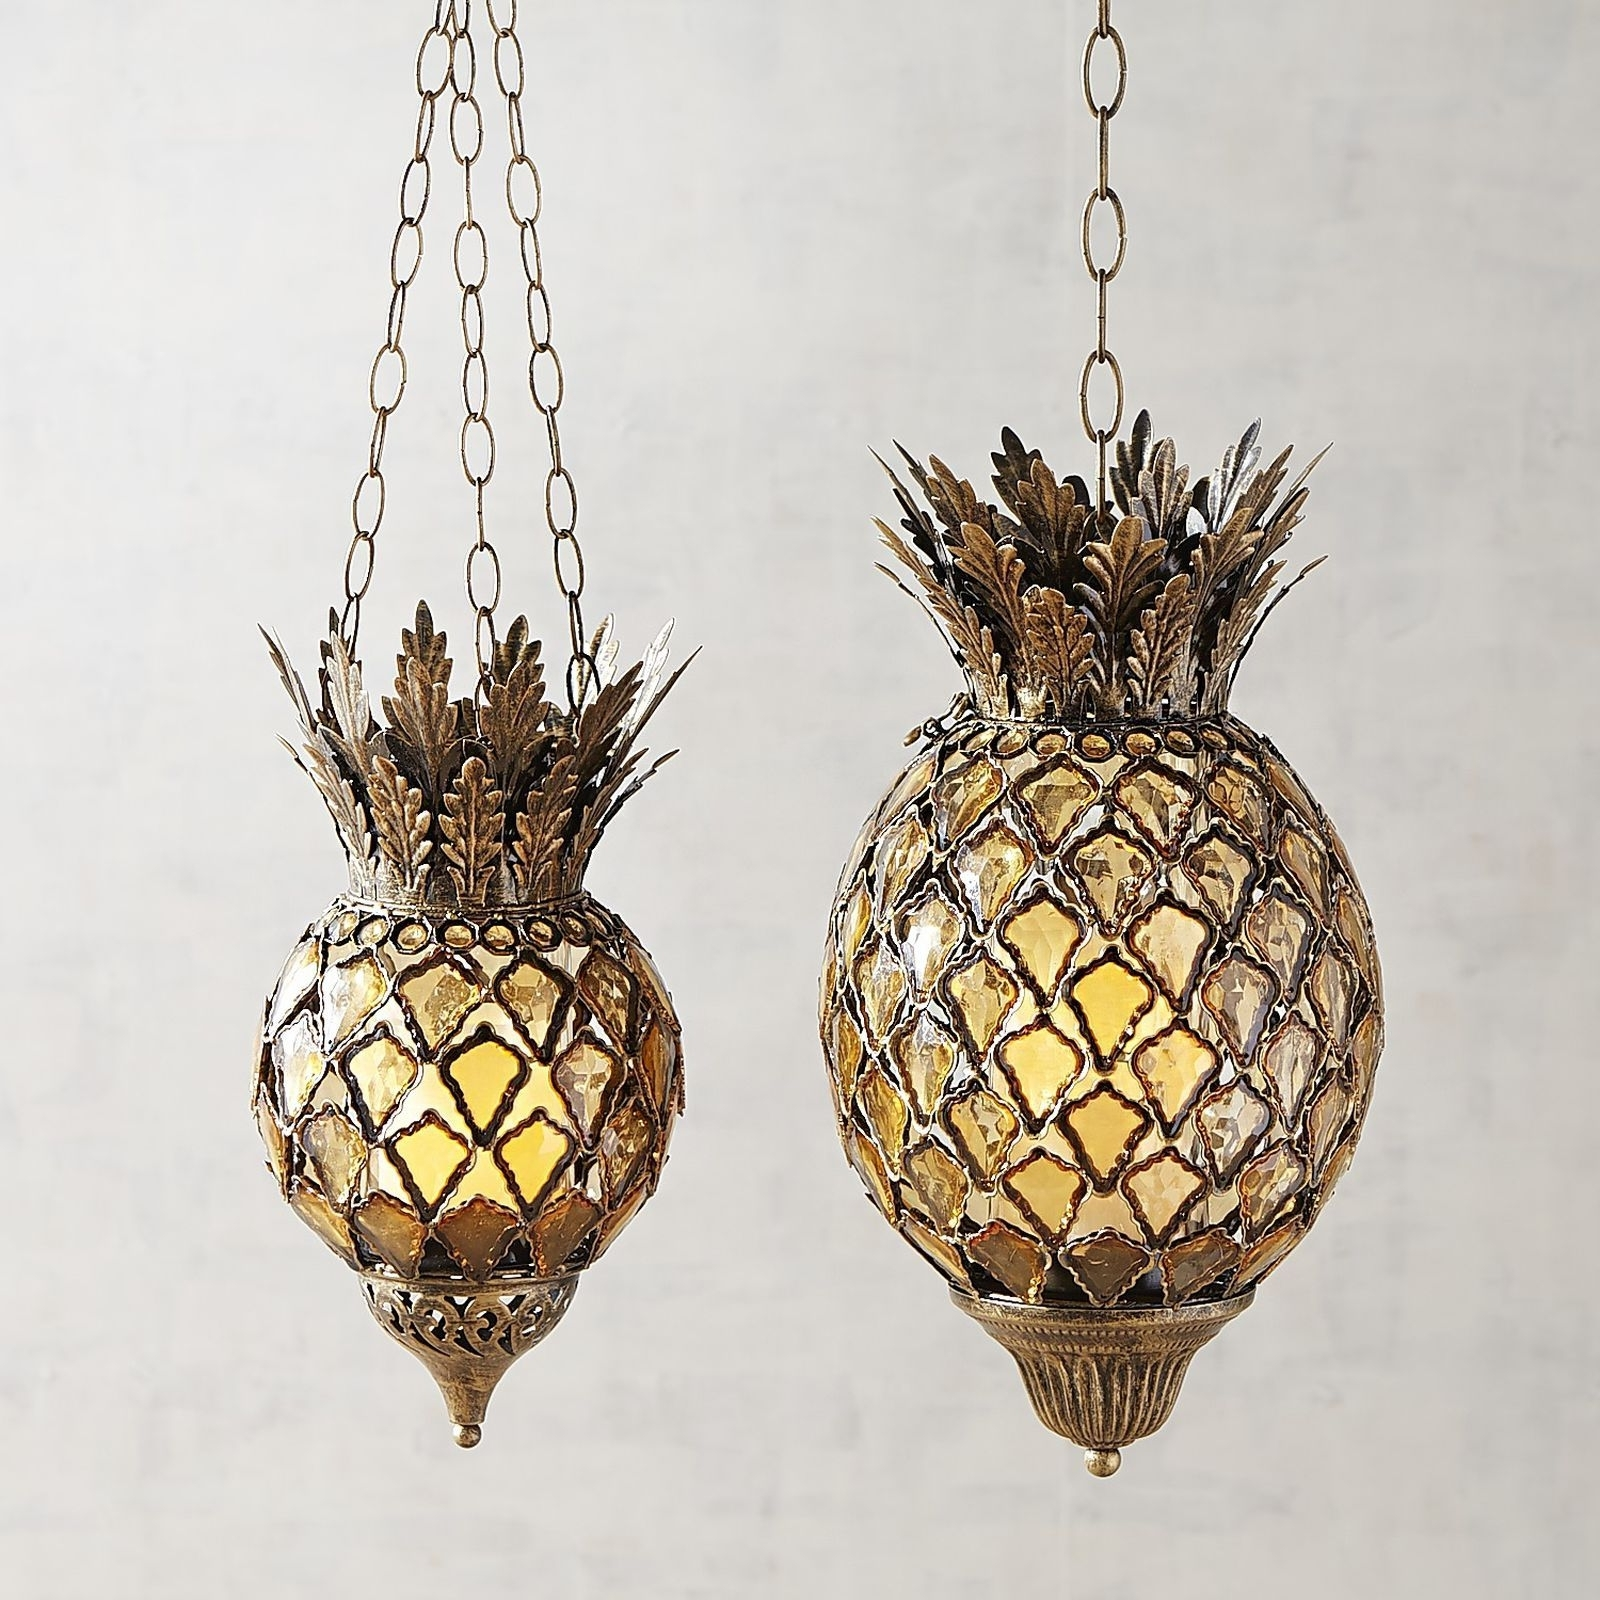 Outdoor Pineapple Lanterns Regarding Latest Pineapple Hanging Light Outdoor Fixtures Bling Gem Boho Lantern (Gallery 16 of 20)